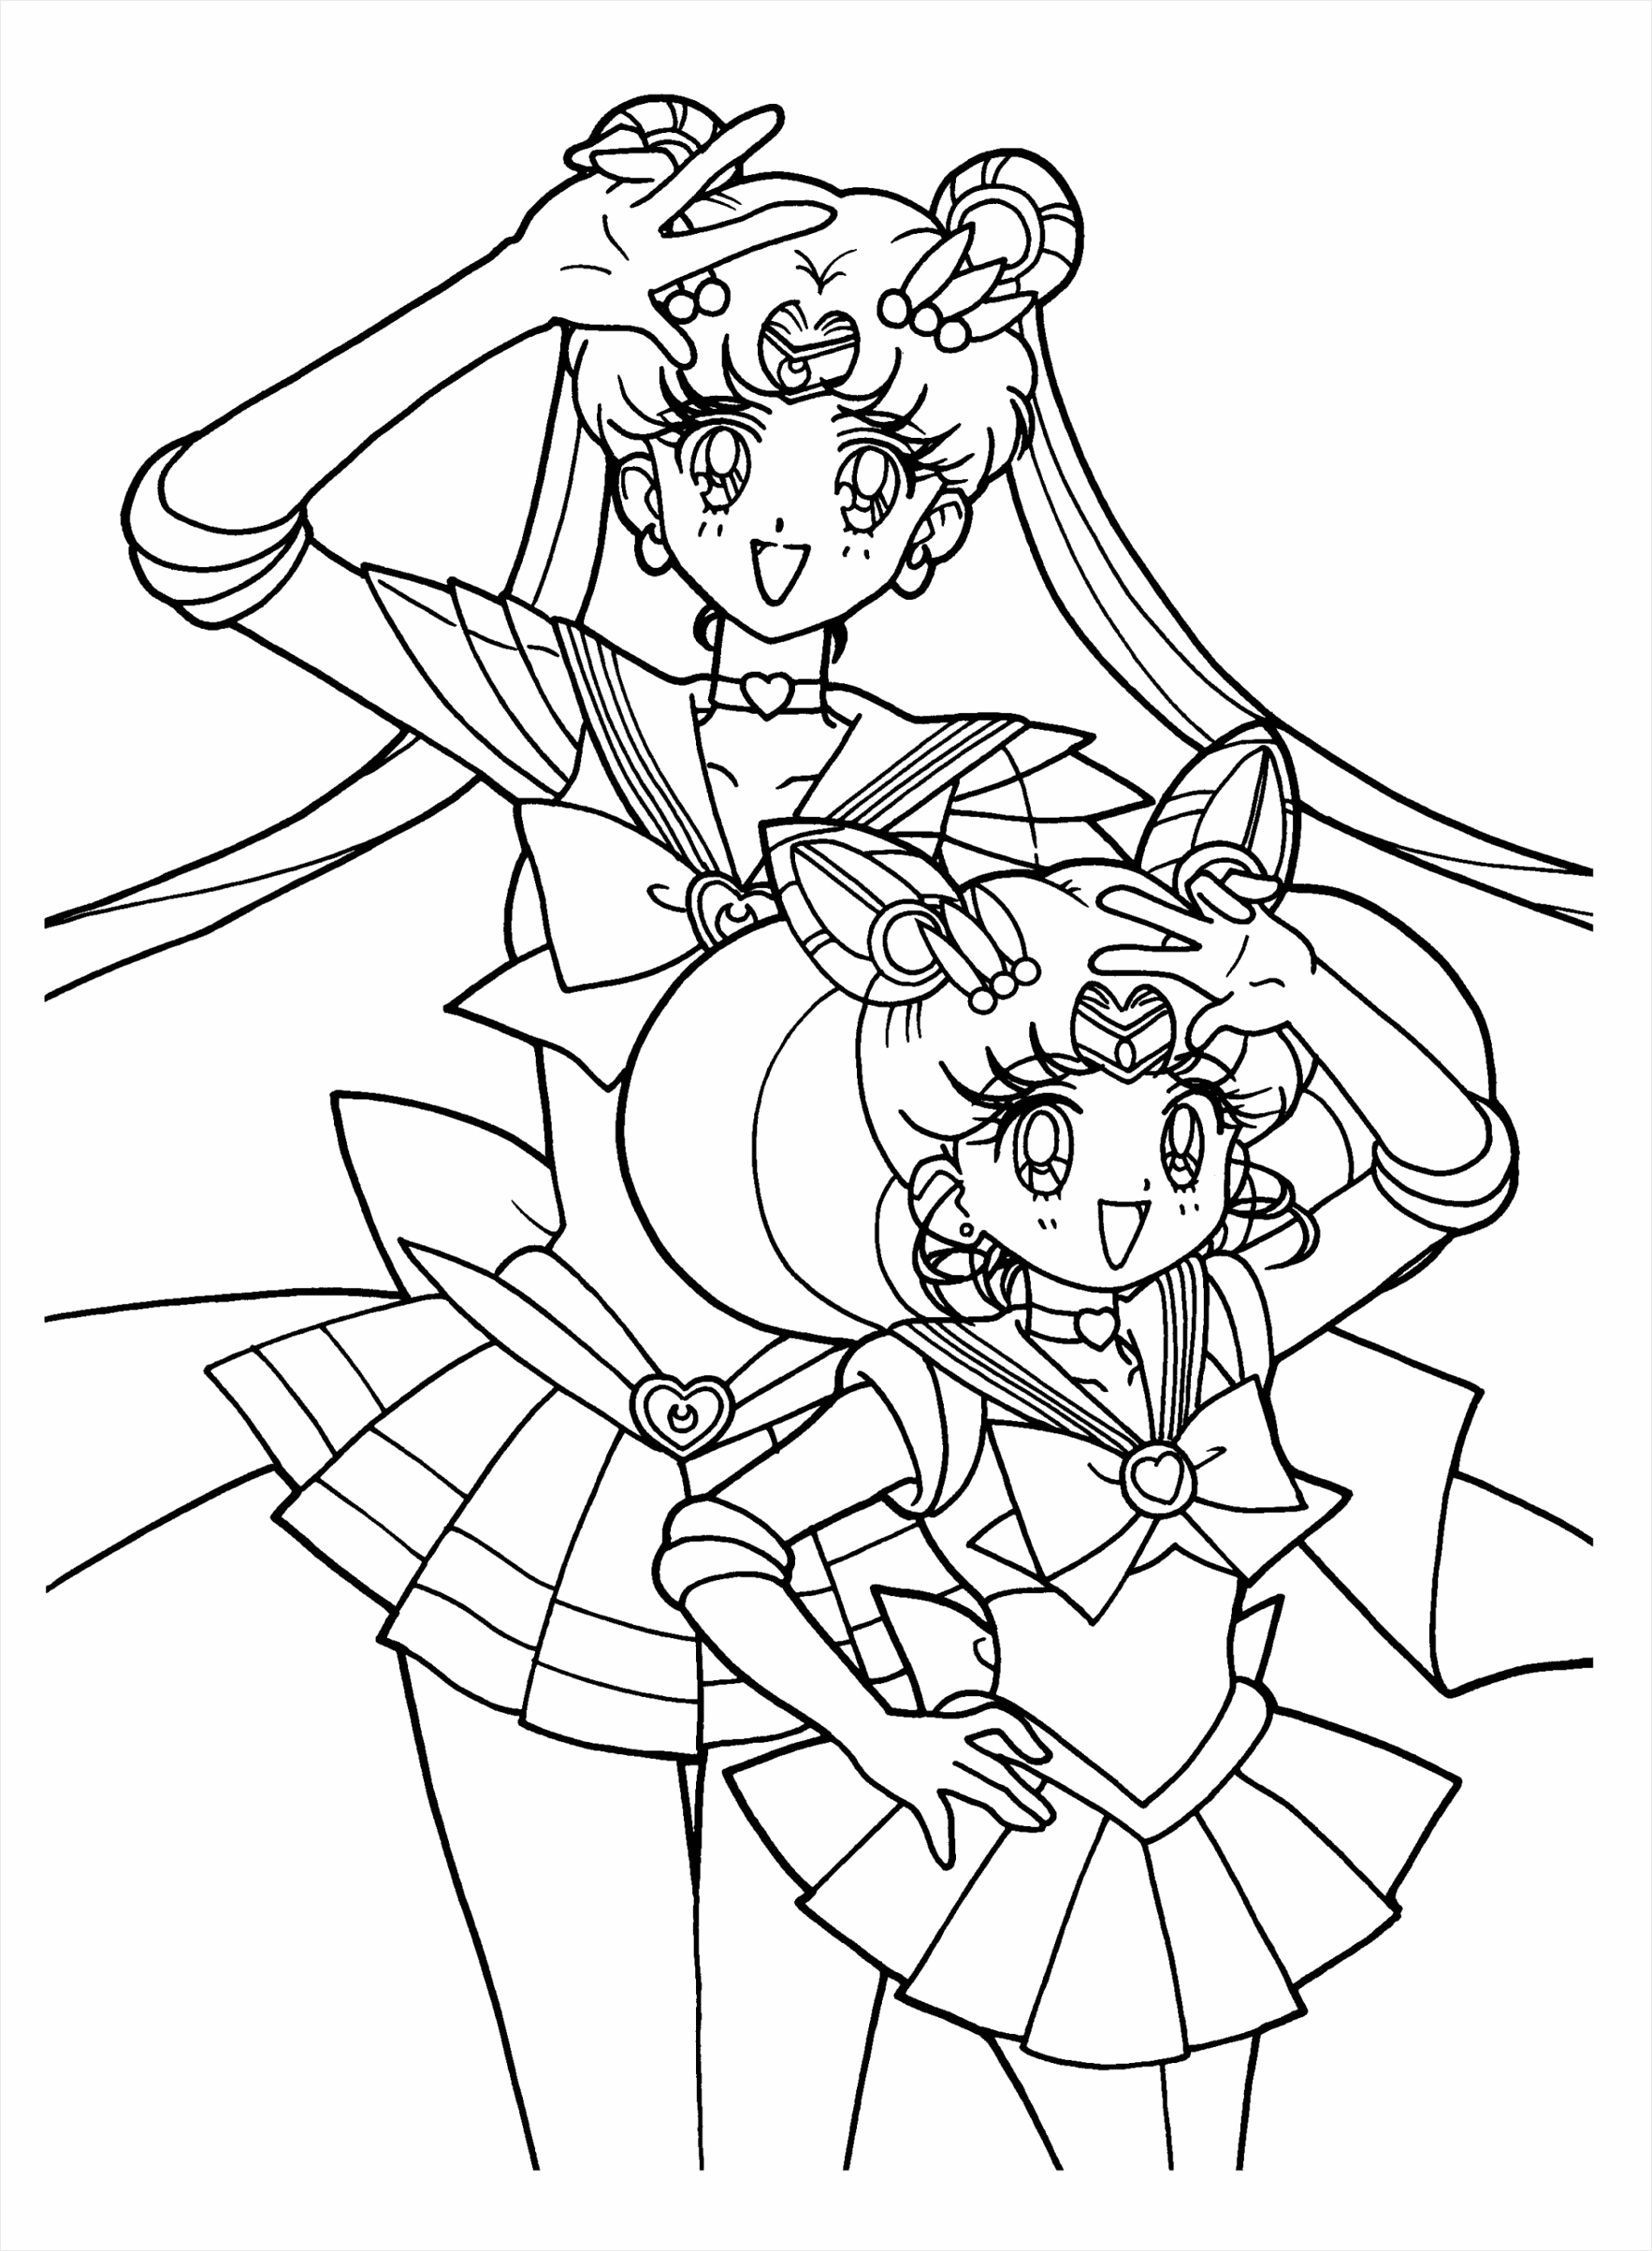 most splendid coloring pages sailoroon printable for free sun and all charactersarvelous book tremendous page enwpa